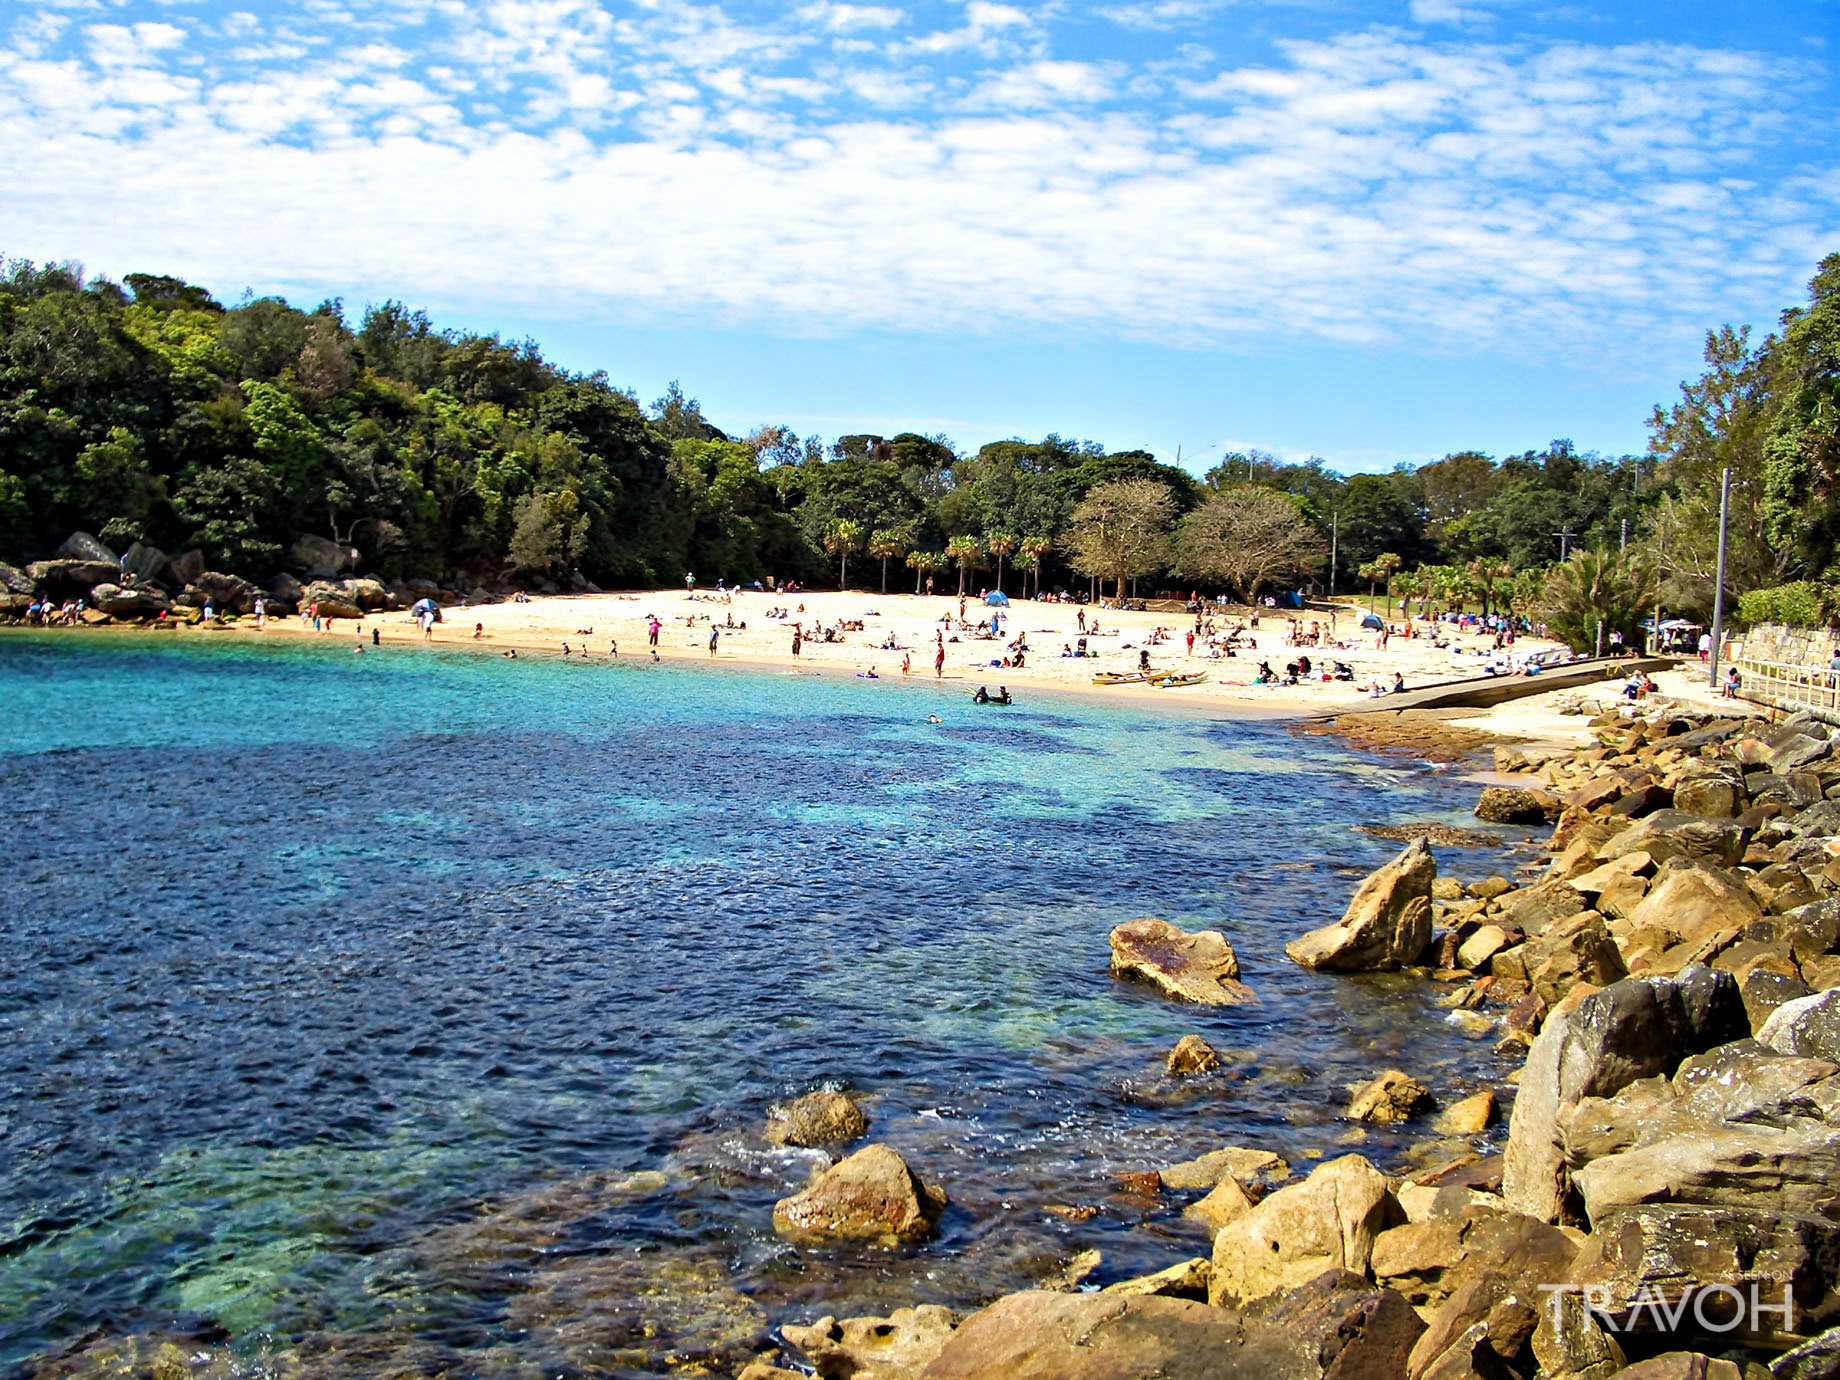 Shelly Beach - Exploring 10 of the Top Beaches in Sydney, Australia